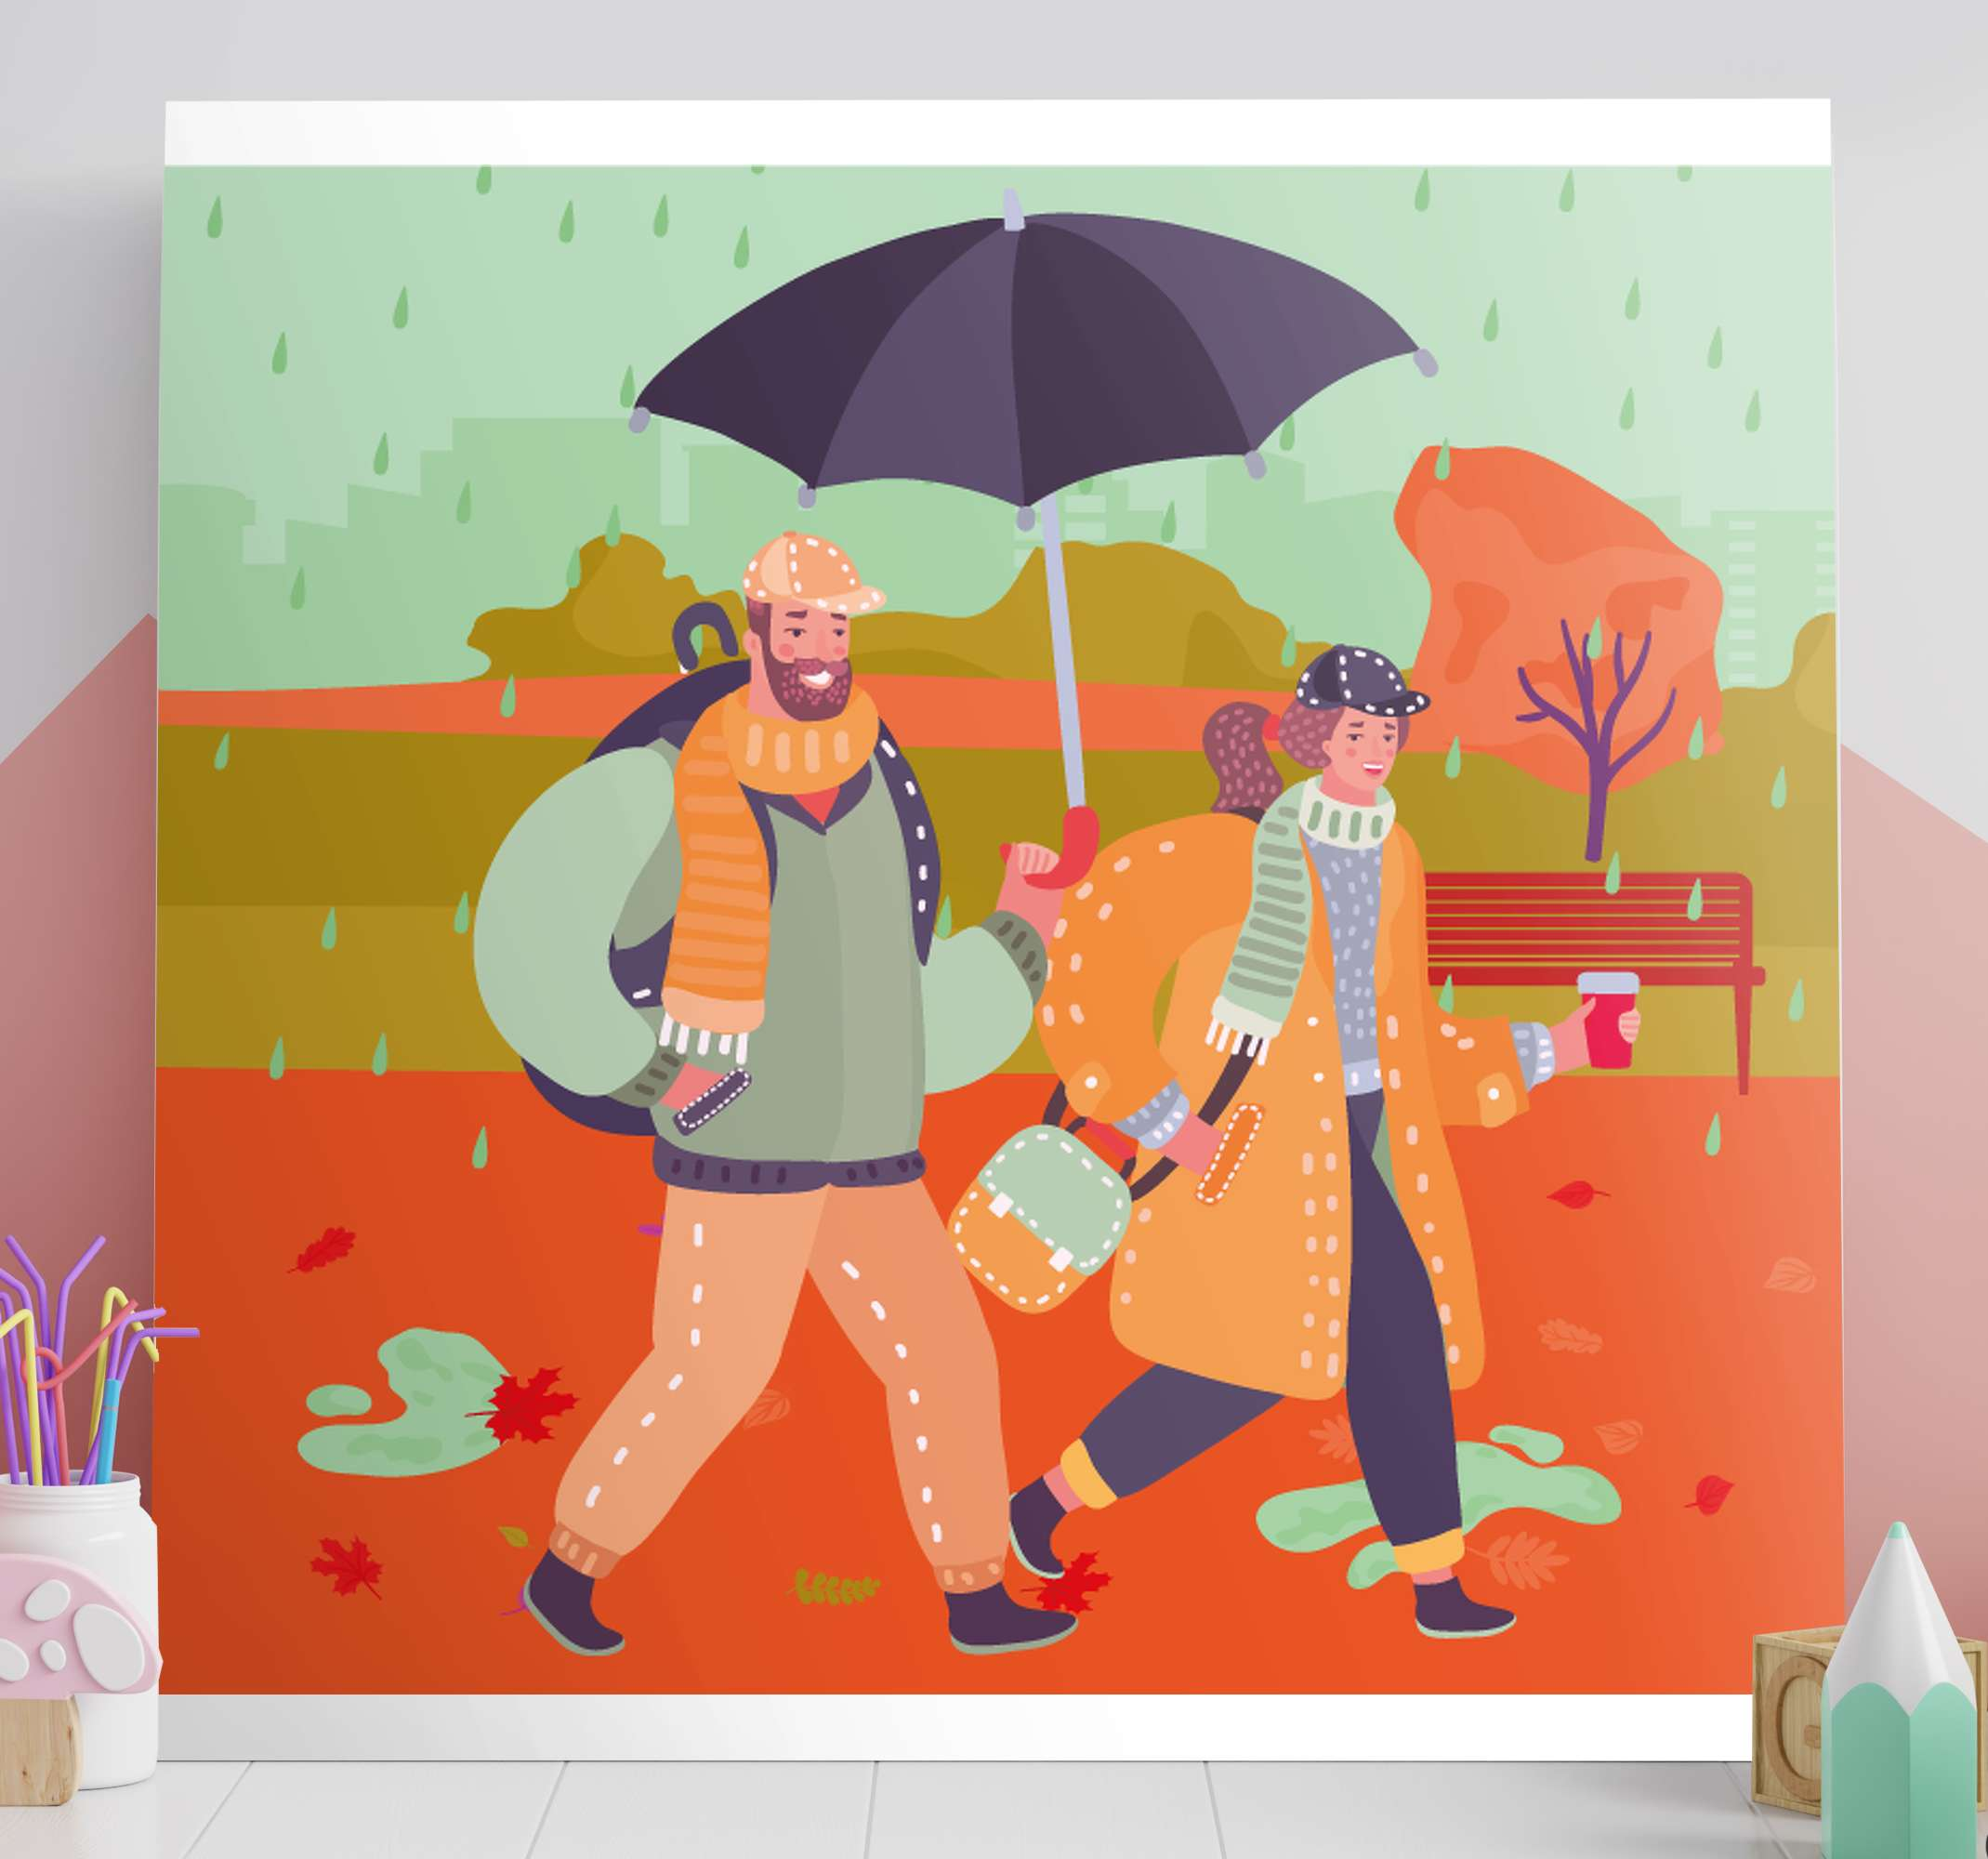 TenStickers. 3D lovers in the rain 3D wall art prints. Lovely 3D canvas wall art with illustration design of lovers in the rain with an umbrella. It is printed in high quality finish and durable.